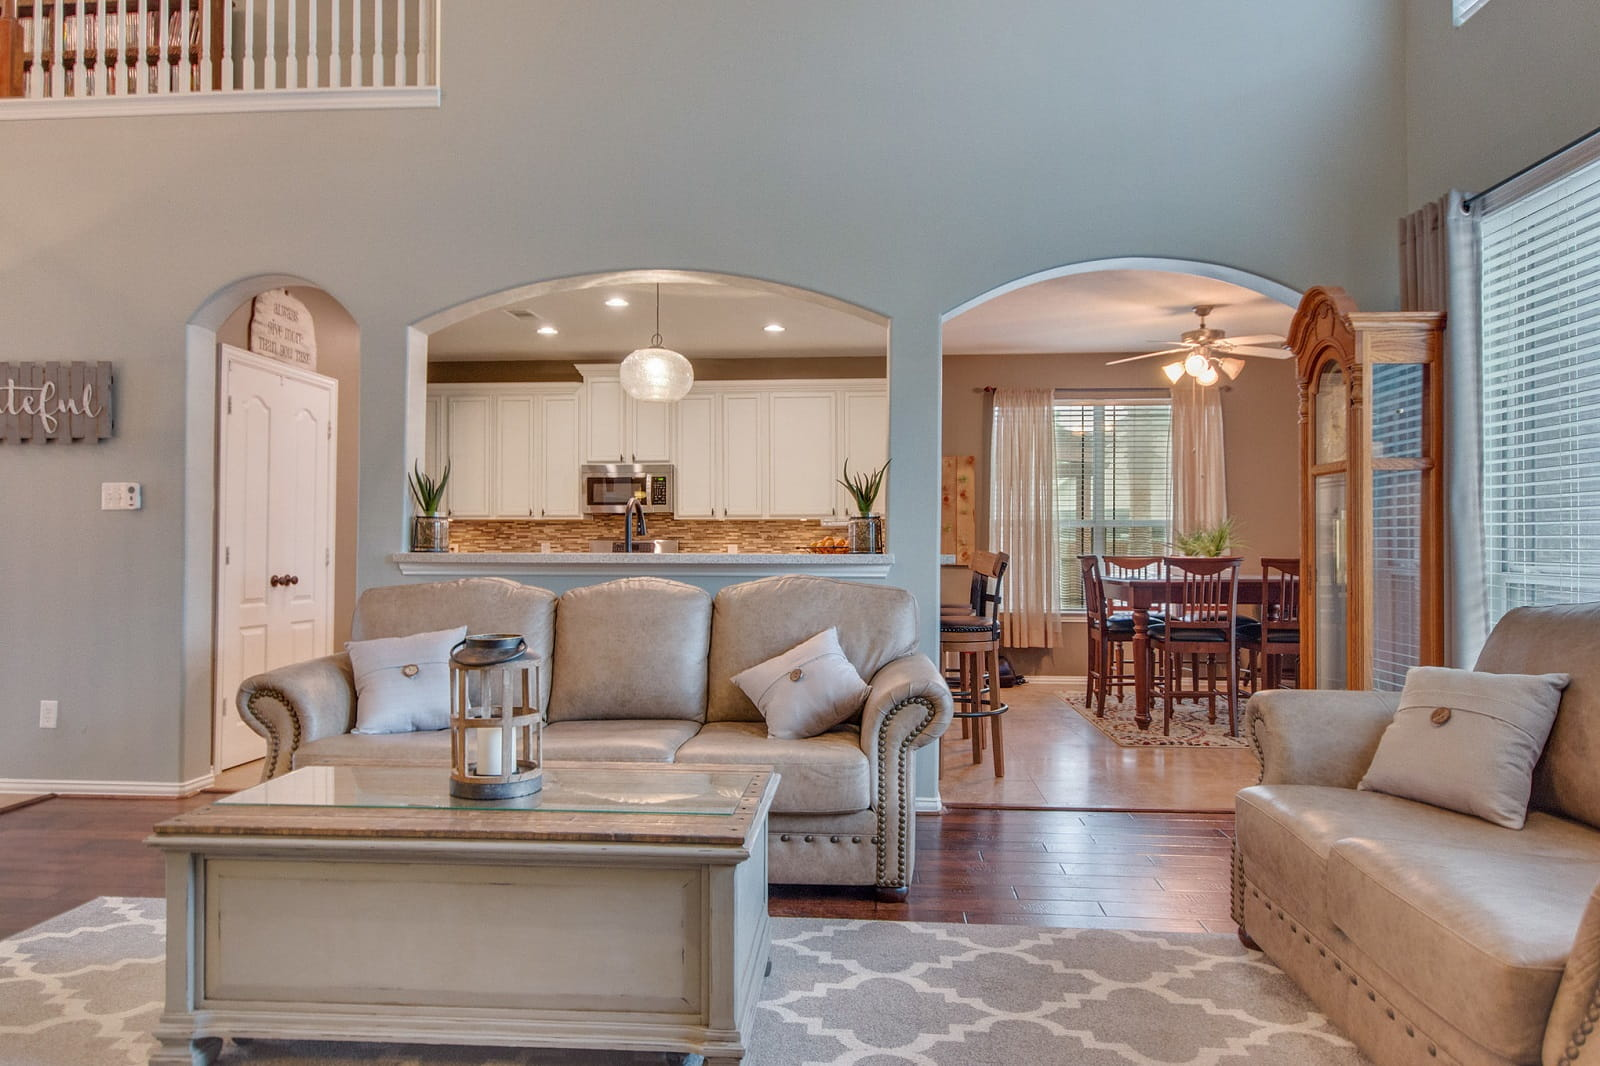 Real Estate Photographers in The Woodlands - TX - Living Area View